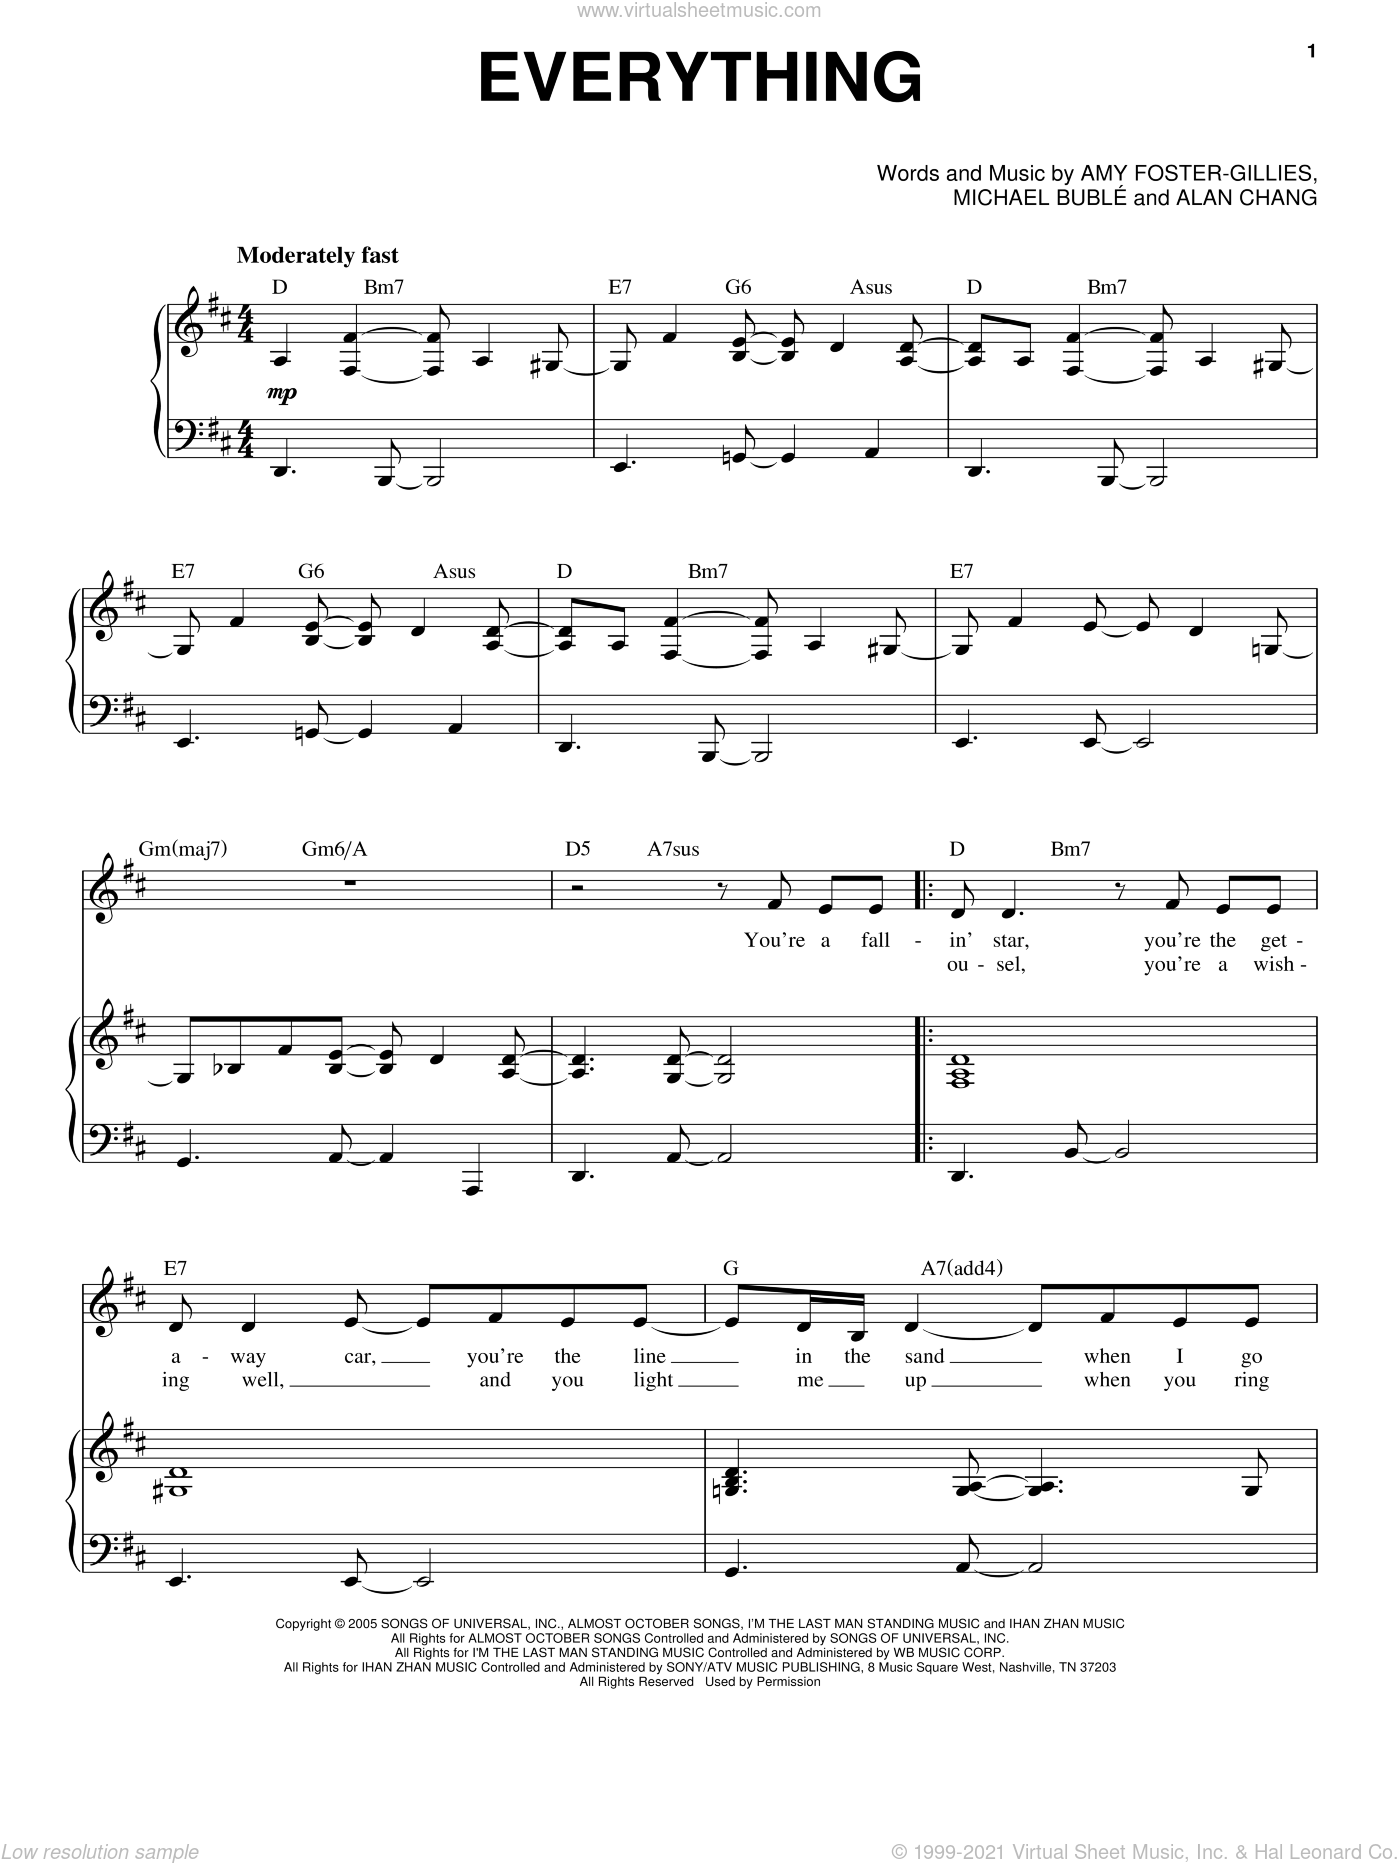 Everything sheet music for voice and piano by Amy Foster-Gillies